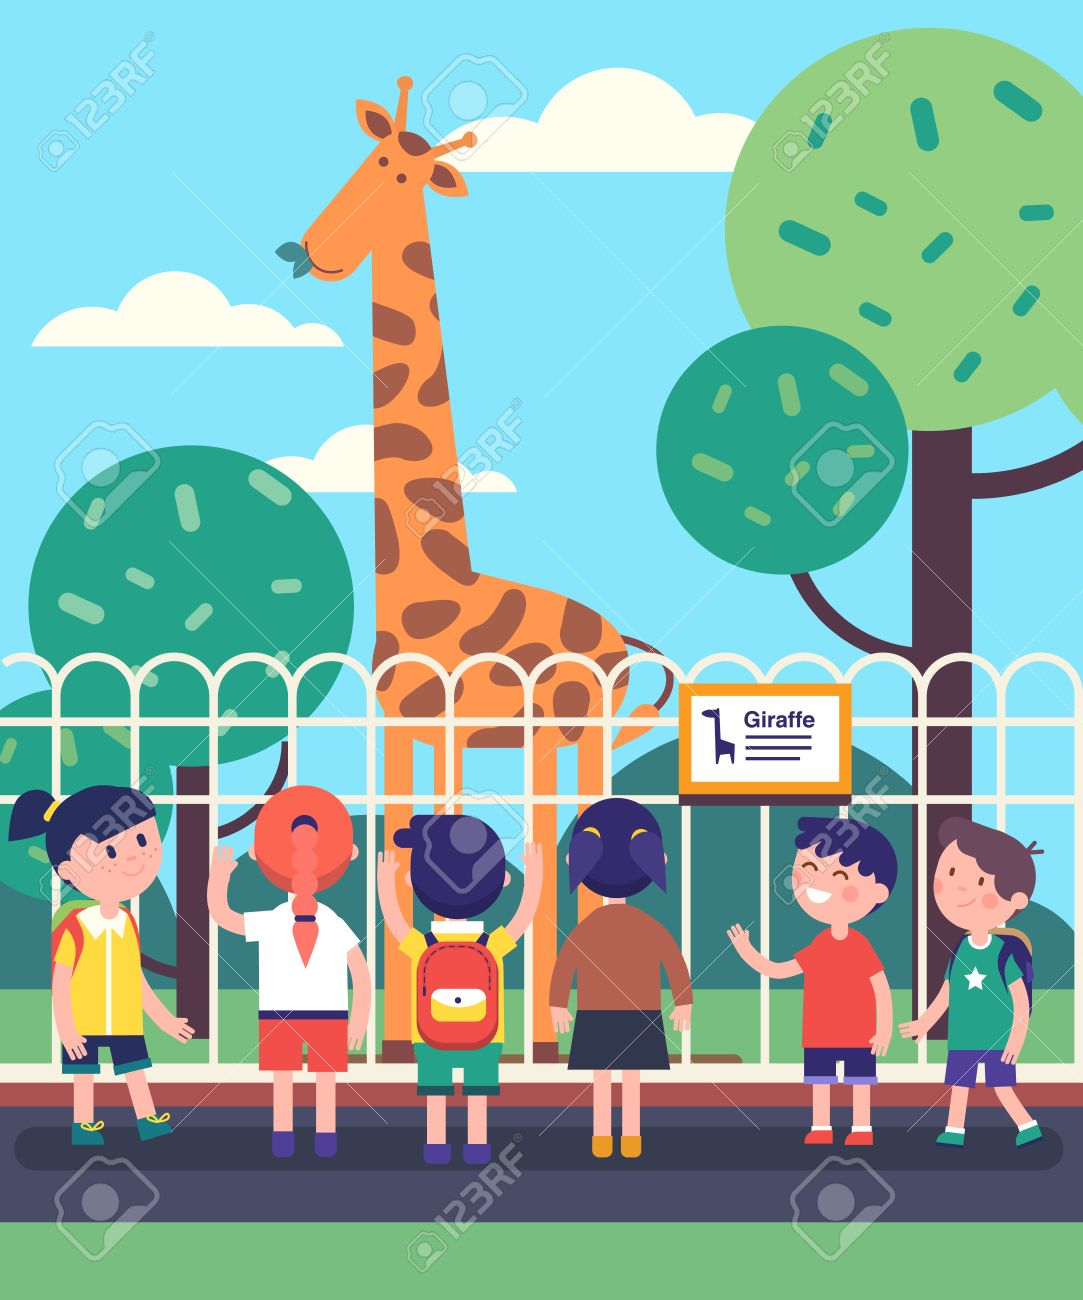 Group of kids watching giraffe at a zoo excursion. School or...